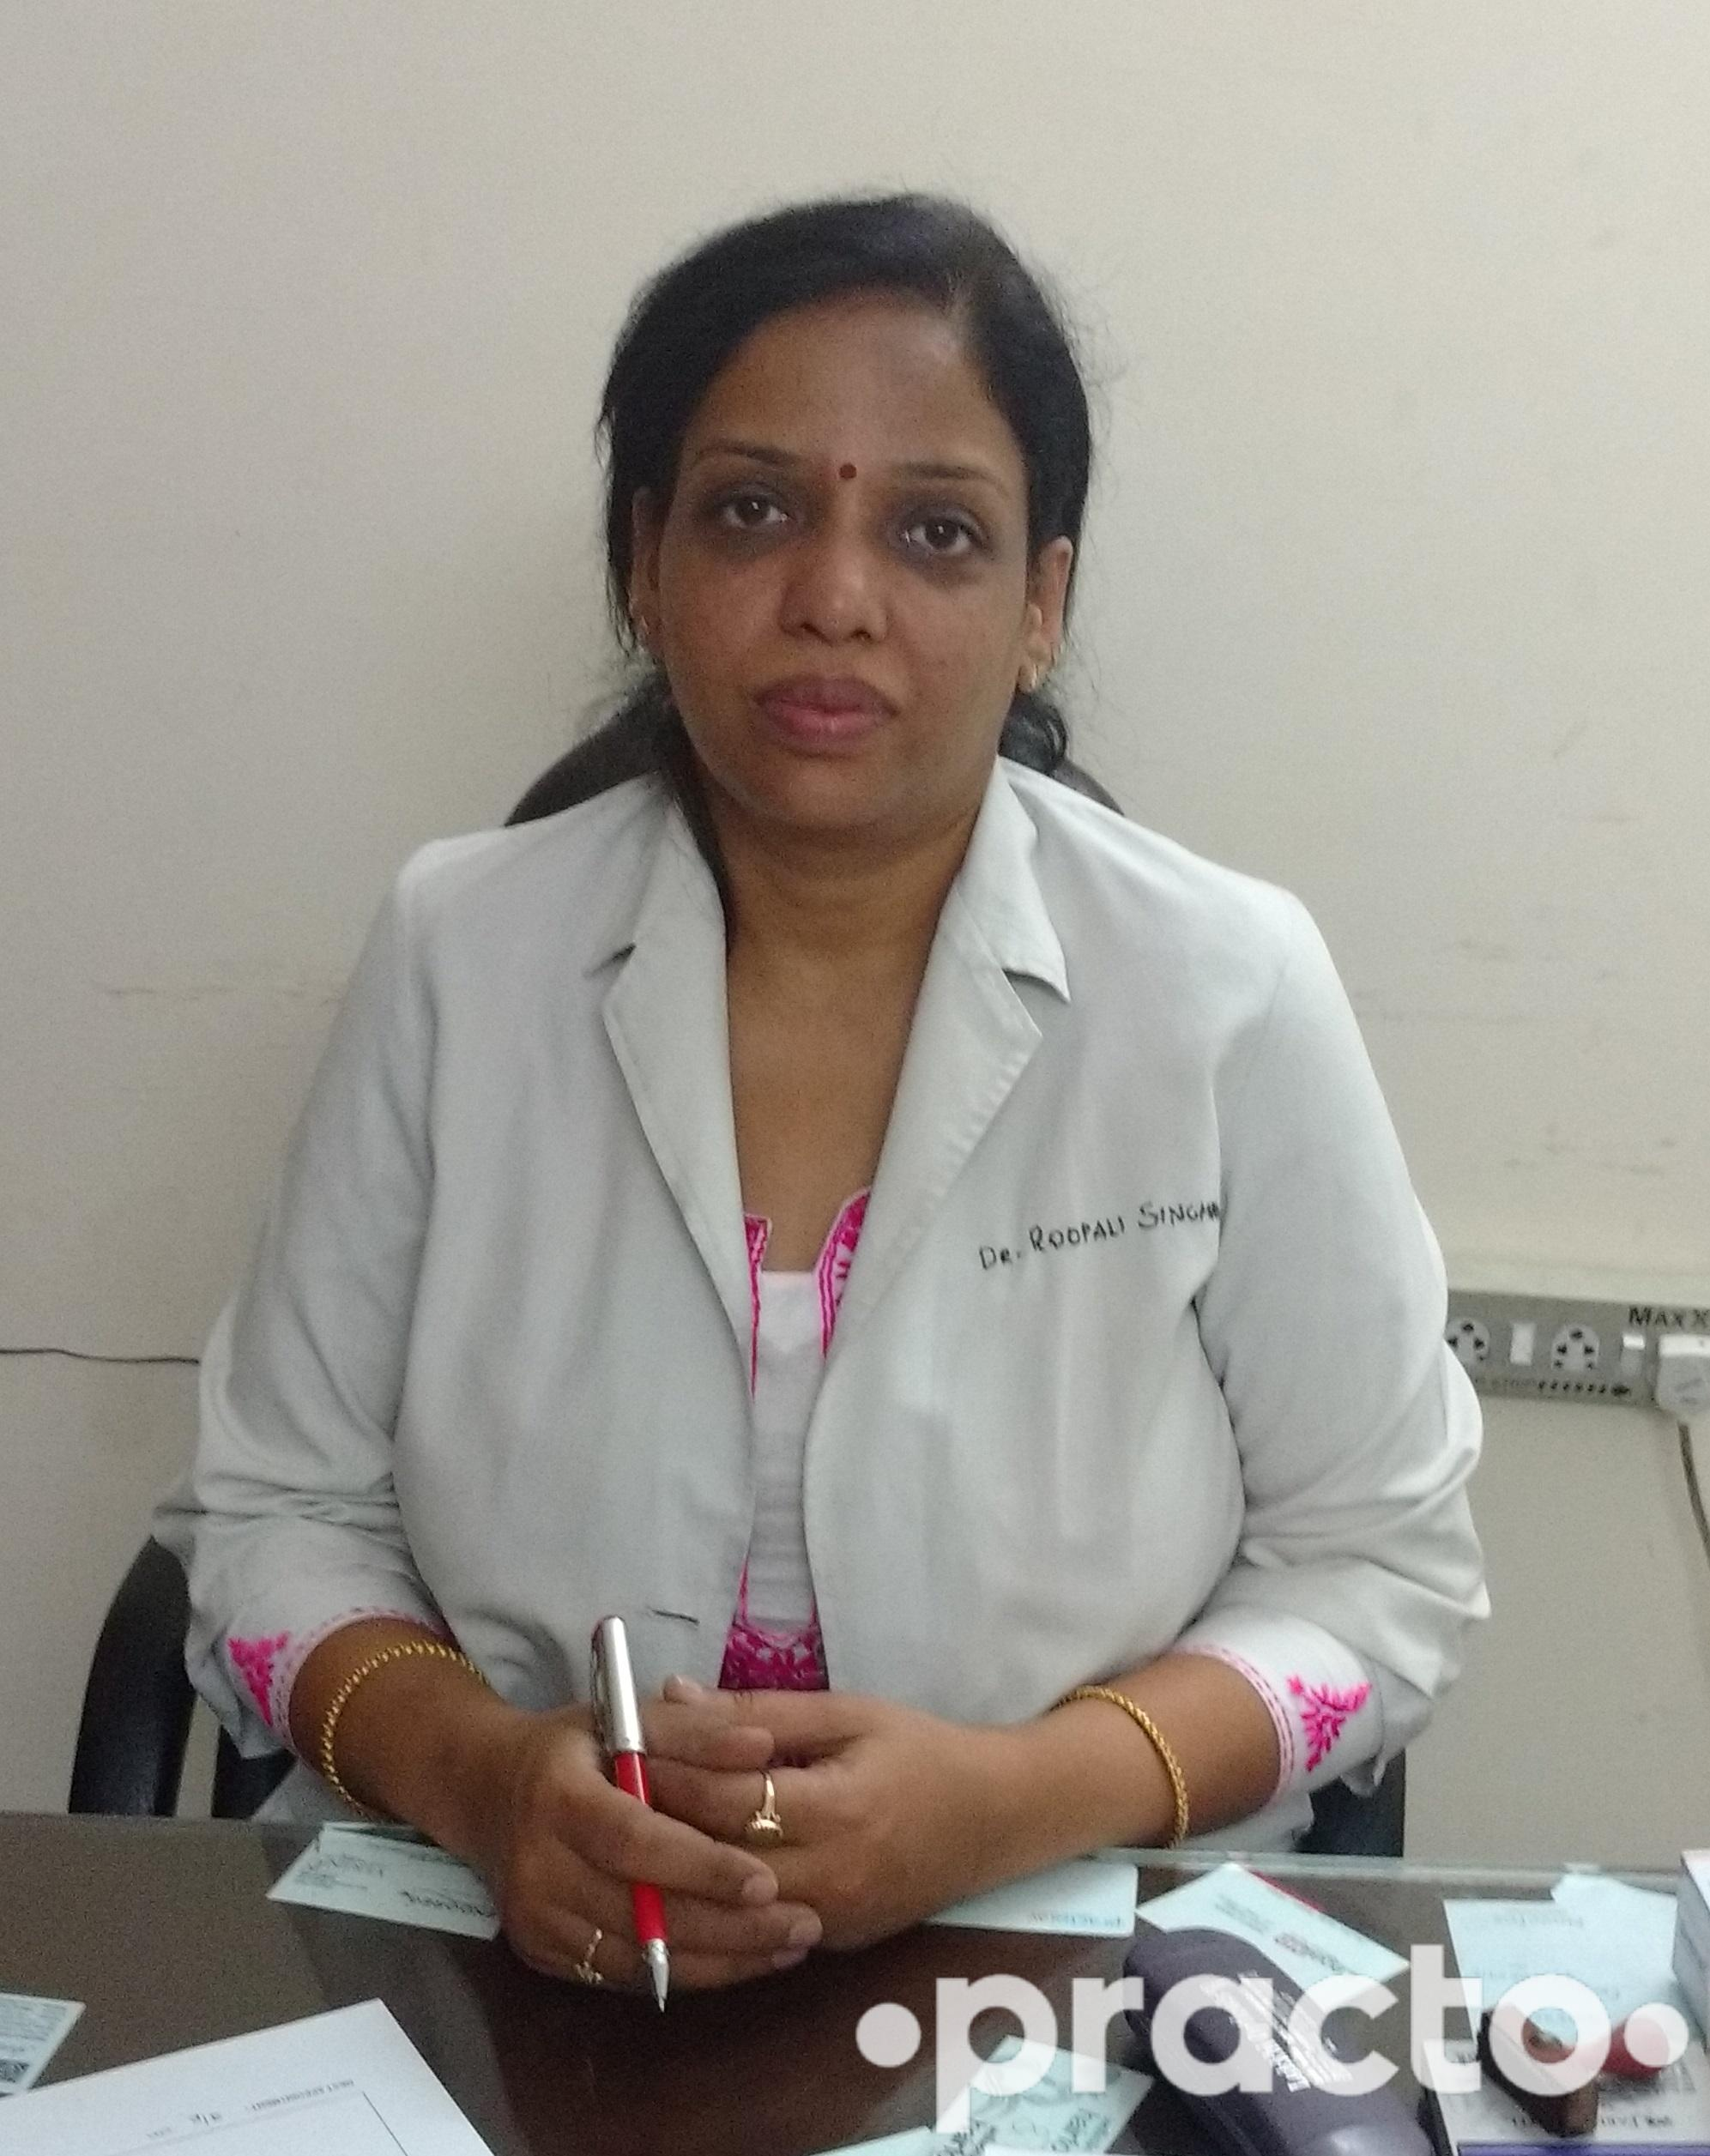 Dr. Roopali Singhal - Gynecologist/Obstetrician